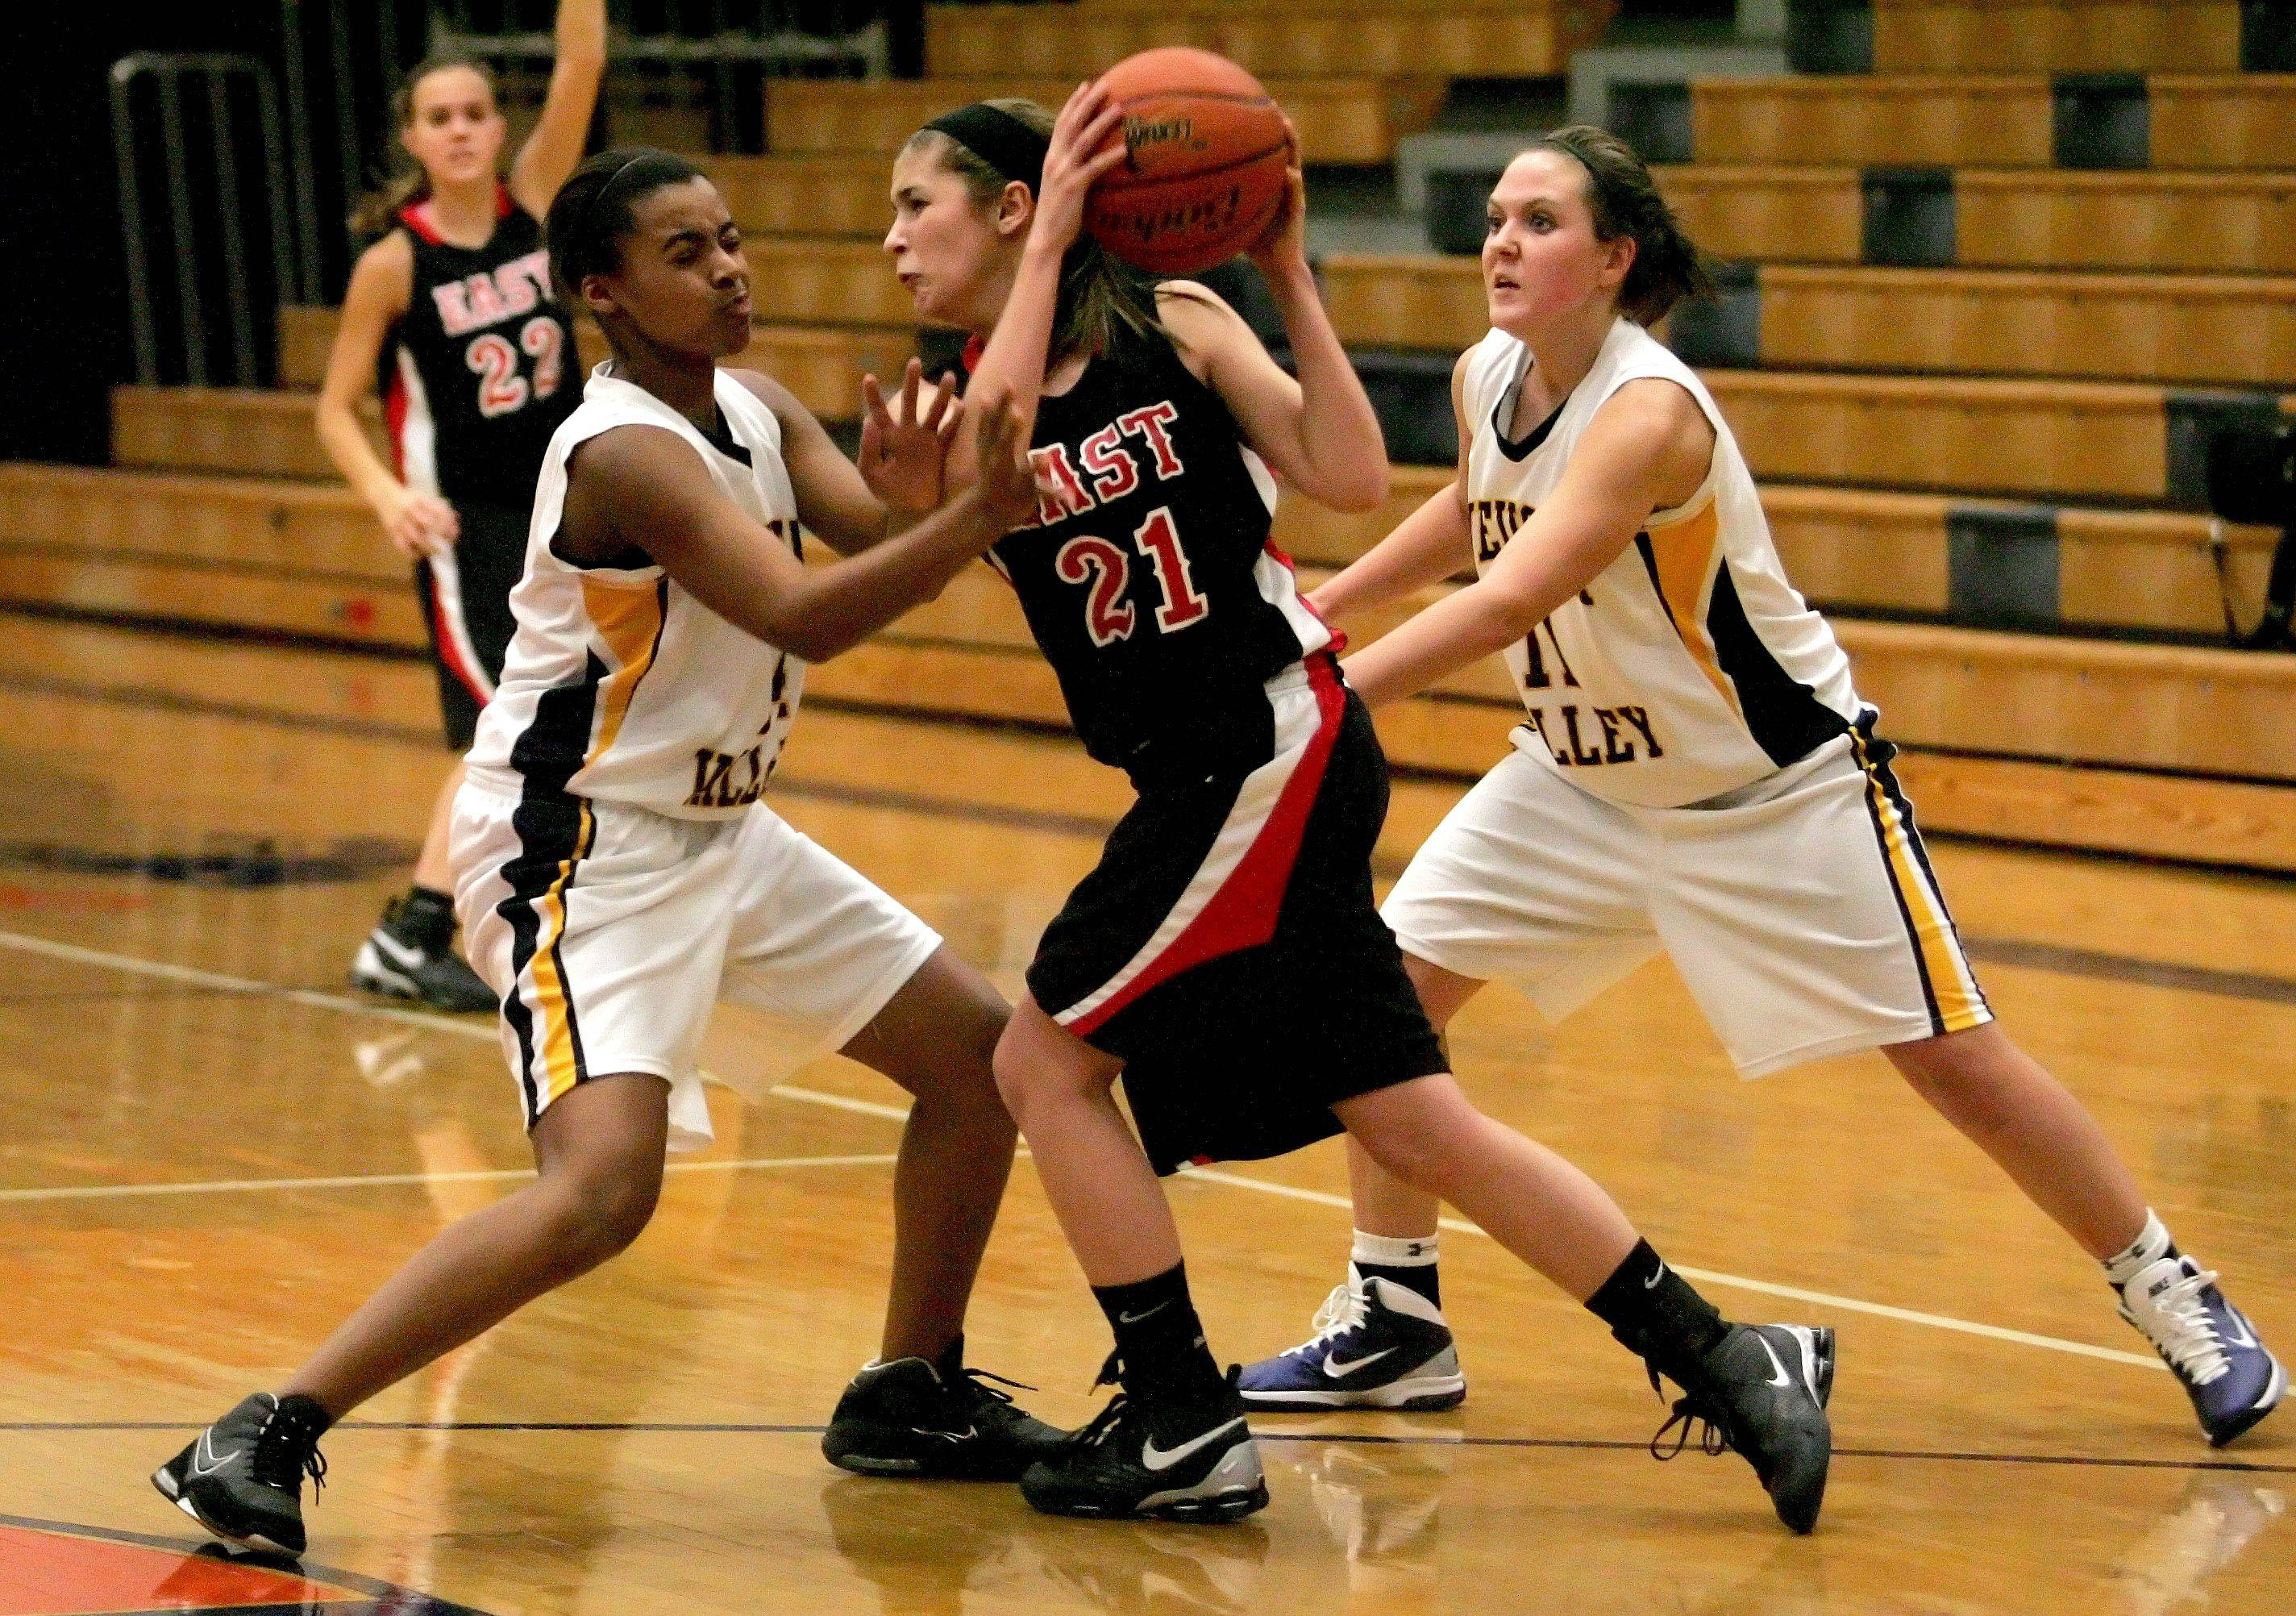 Kelly Eberle of Glenbard East, center, gets caught between Amber Smith, left and Megan Doody, right, of Neuqua Valley.